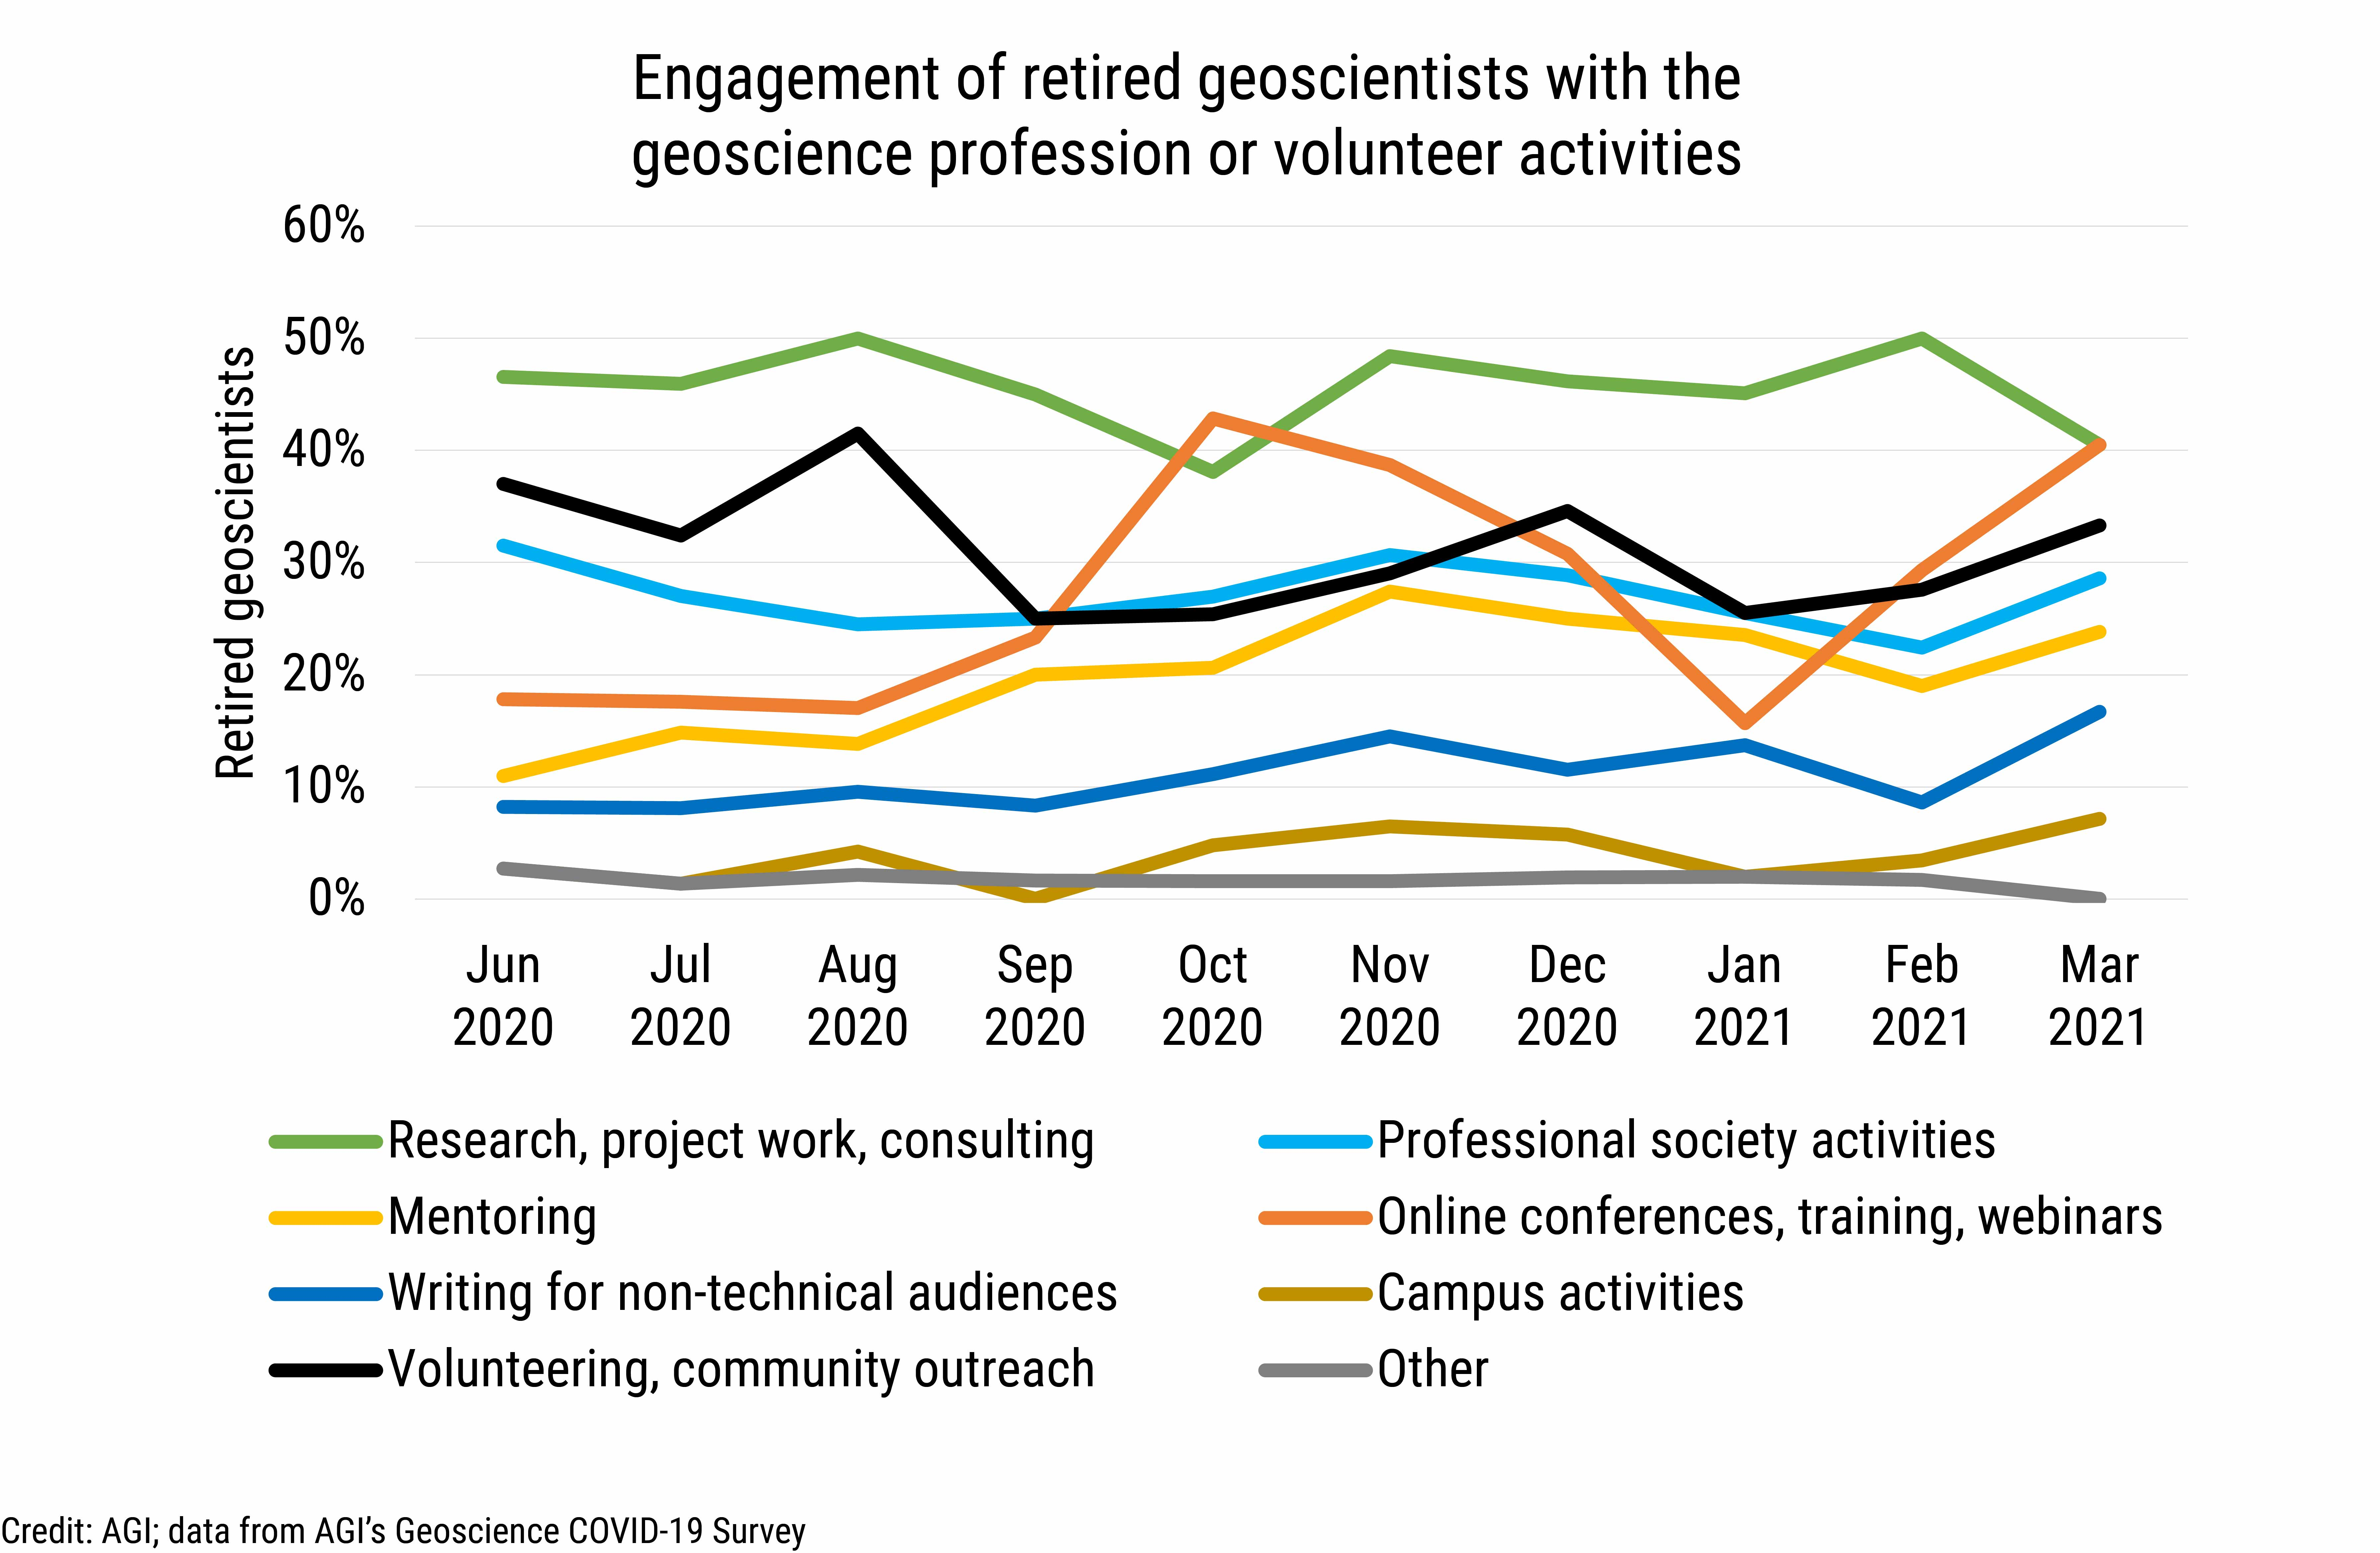 DB_2021-012 chart 02: Engagement of retired geoscientists with the geoscience profession or volunteering activities (Credit: AGI; data from AGI's Geoscience COVID-19 Survey)